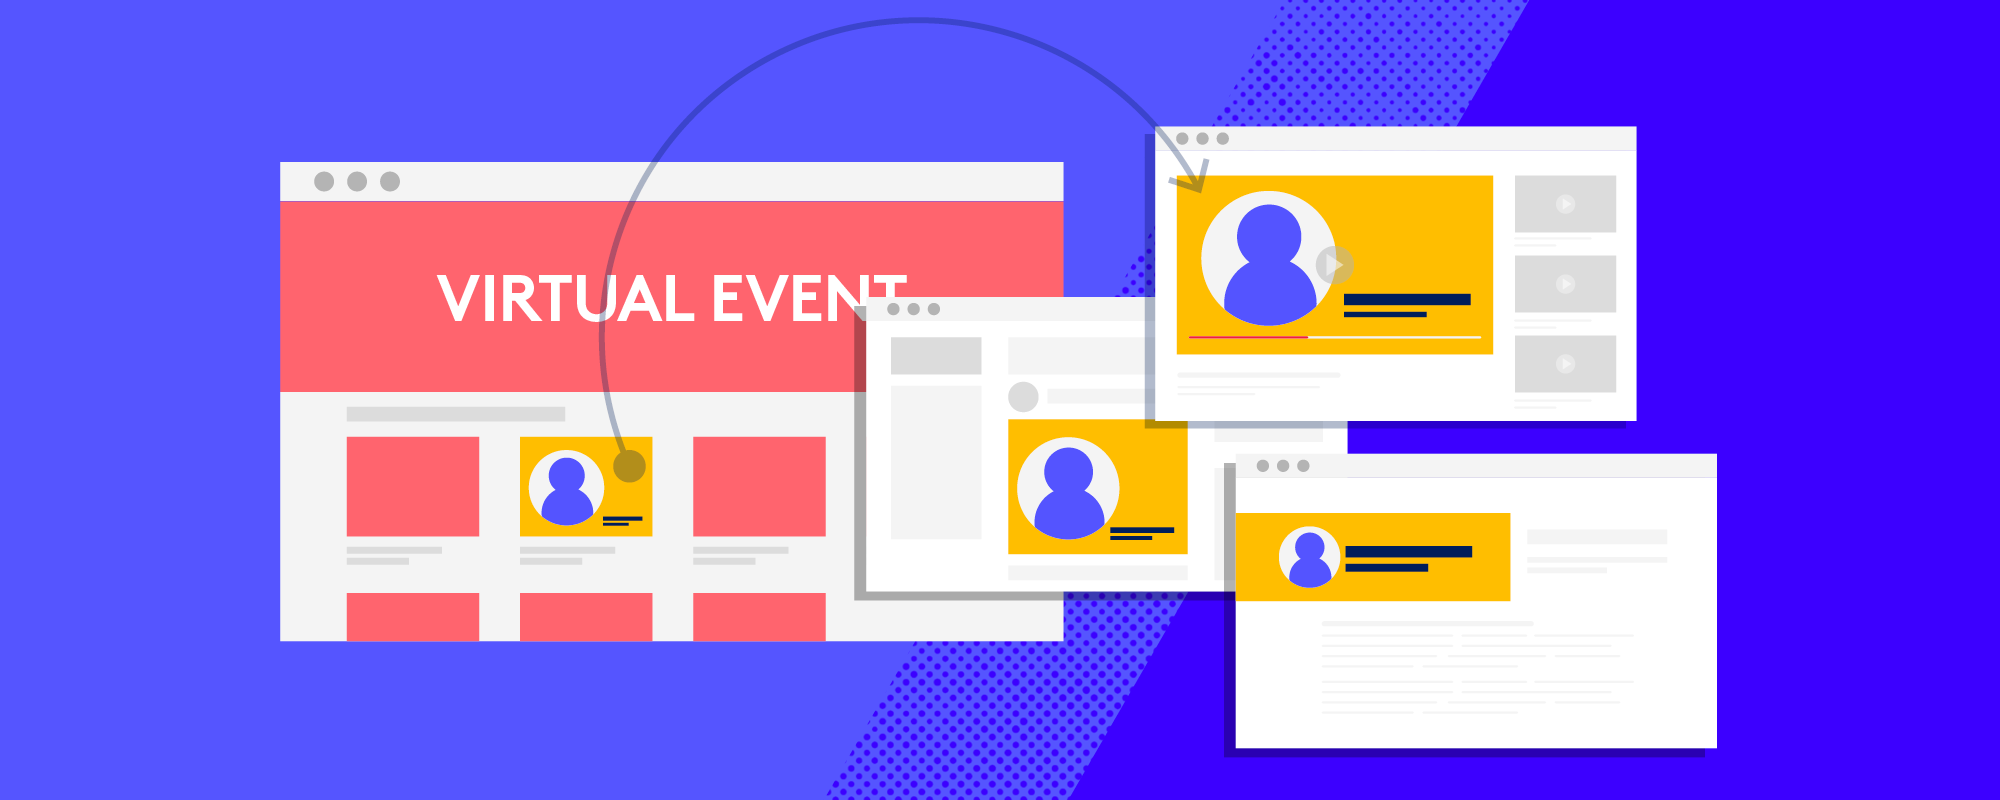 5 Ways To Repurpose Your Virtual Event To Increase ROI